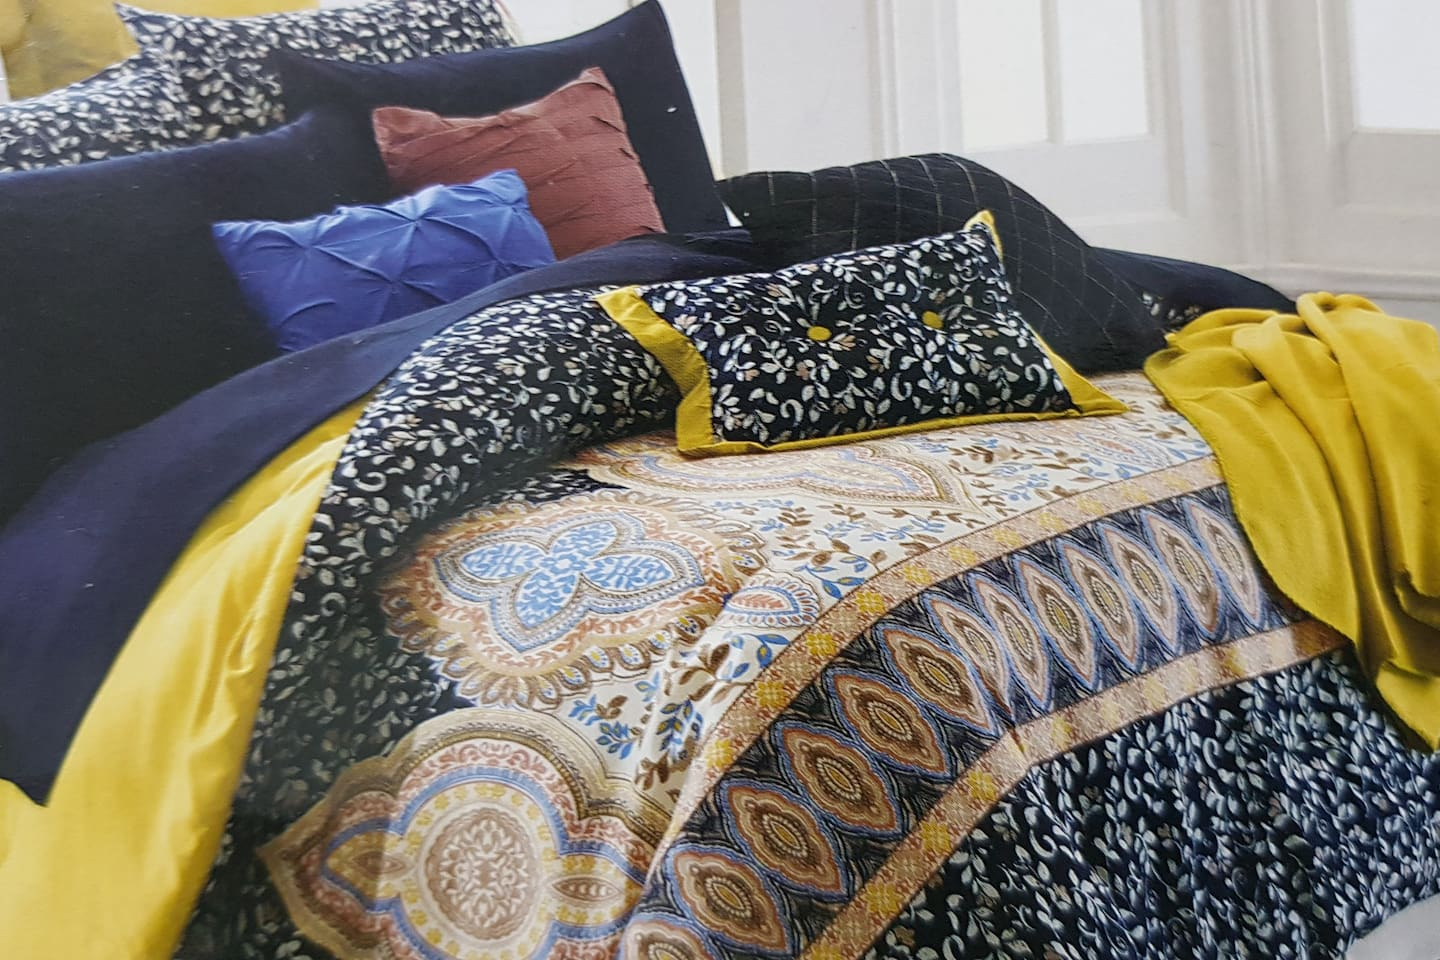 Bed topper with luxury 16 pc bedding